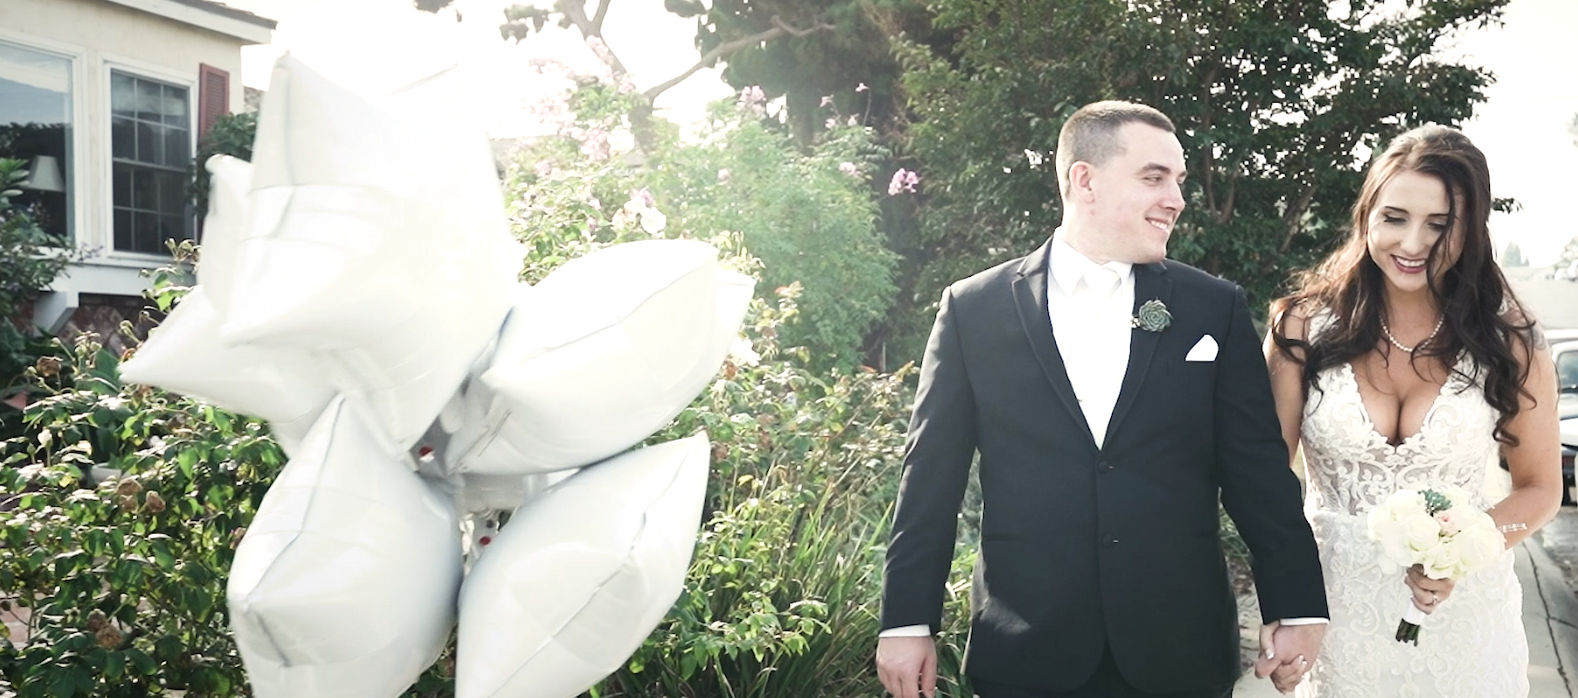 Nicole + Michael | Los Angeles, California | Backyard